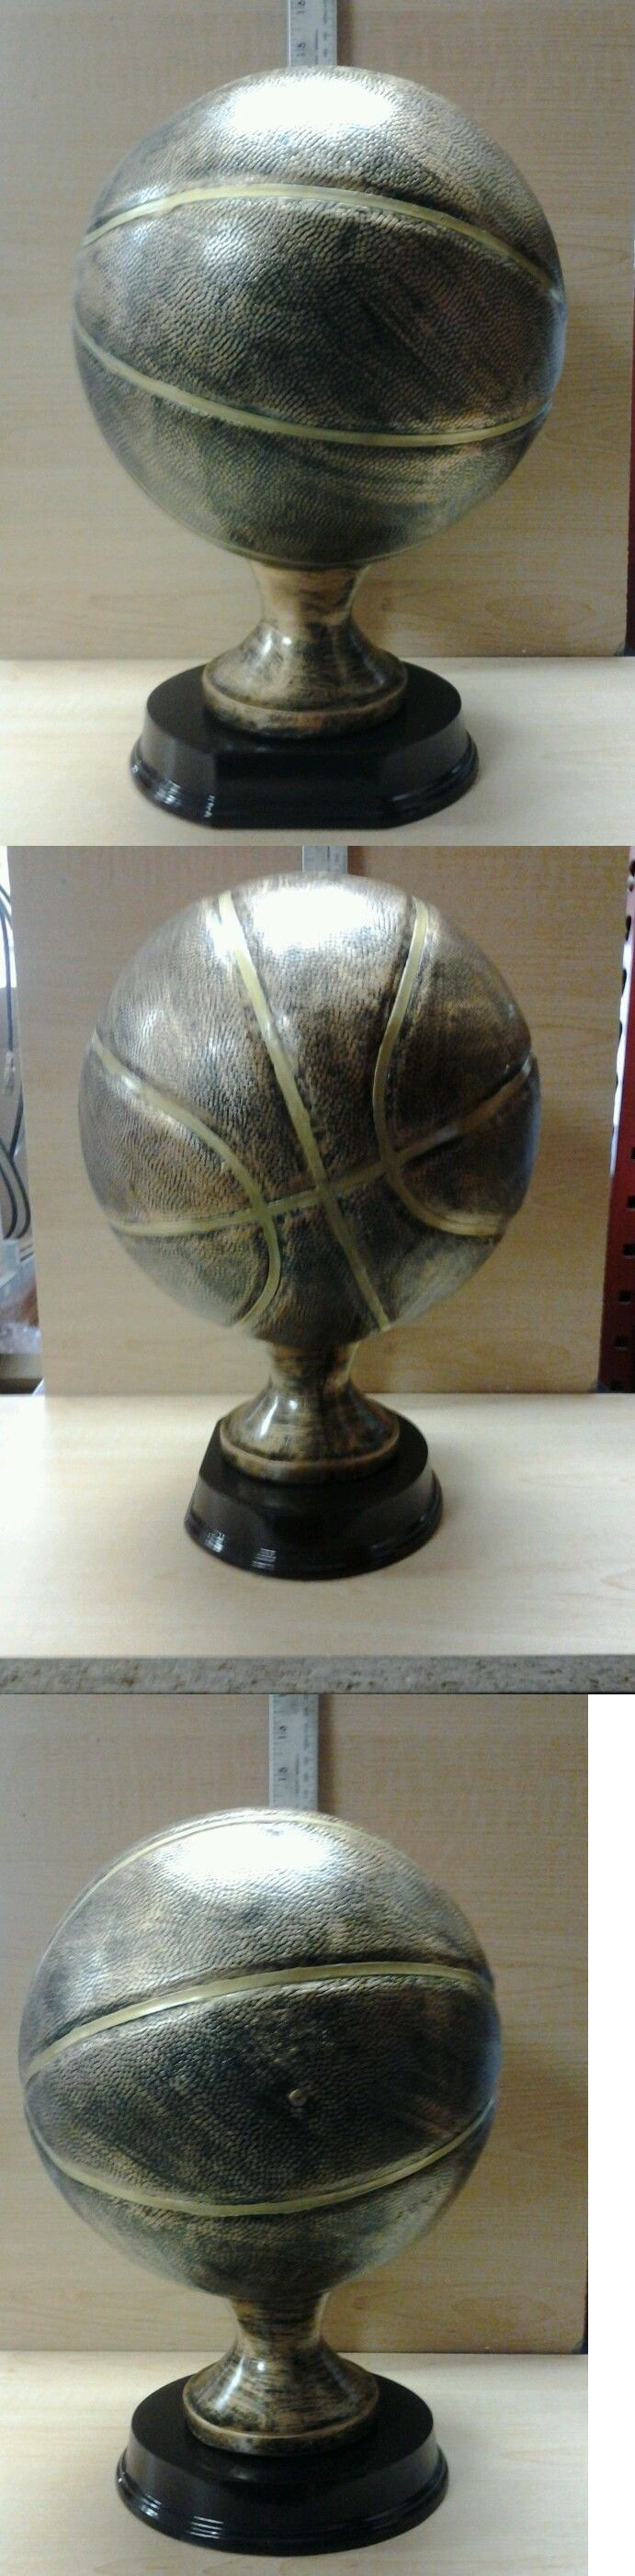 Other Basketball 2023: Basketball Trophy -> BUY IT NOW ONLY: $40 on eBay!